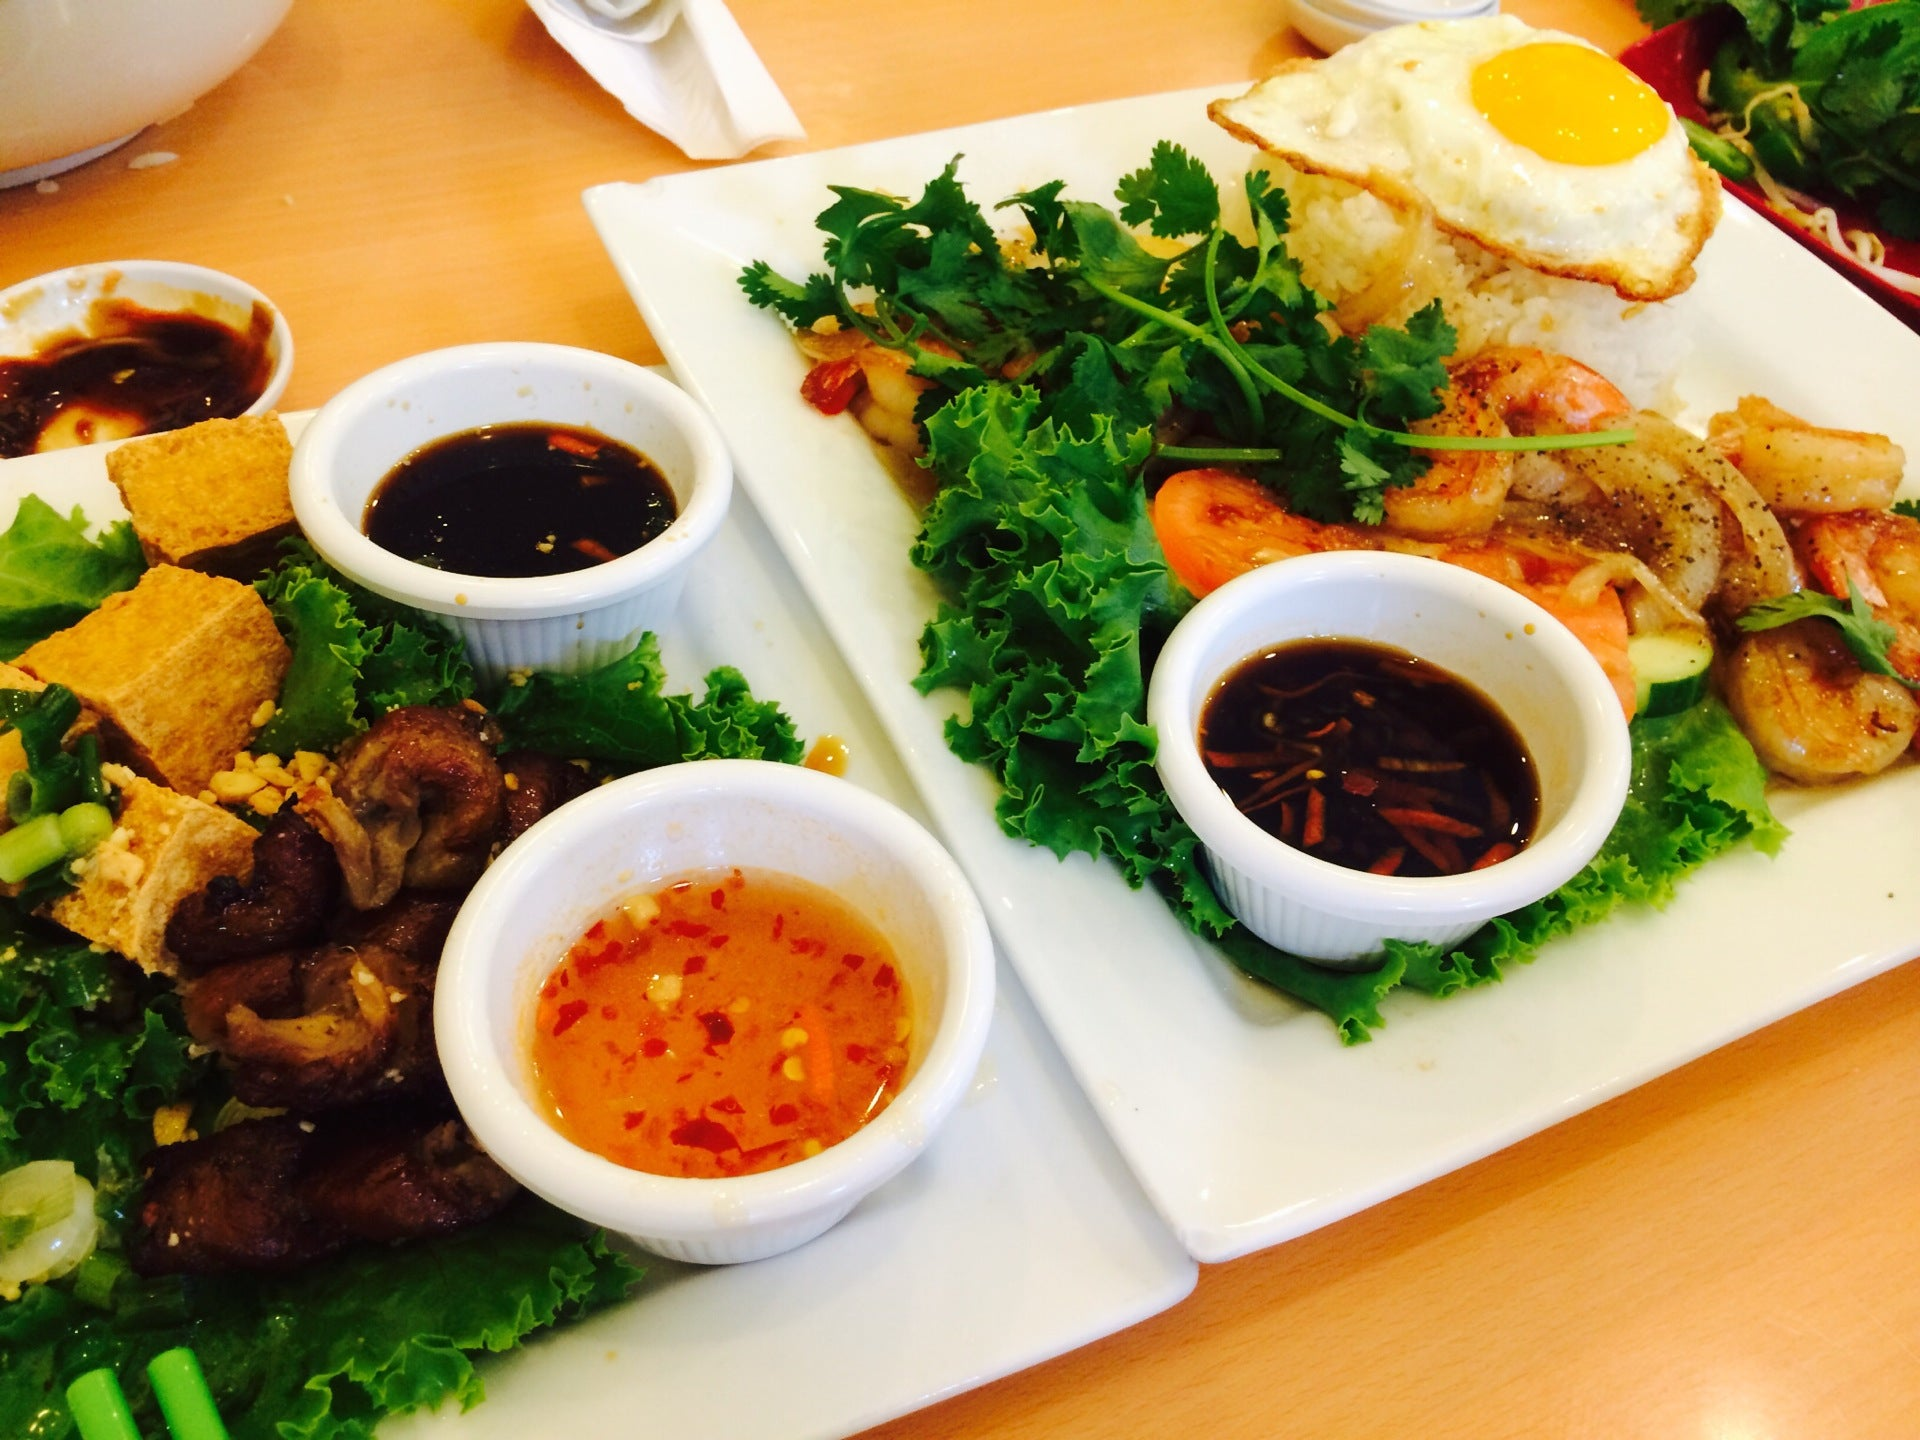 Greenleaf Vietnamese Cuisine,bubble tea,pho